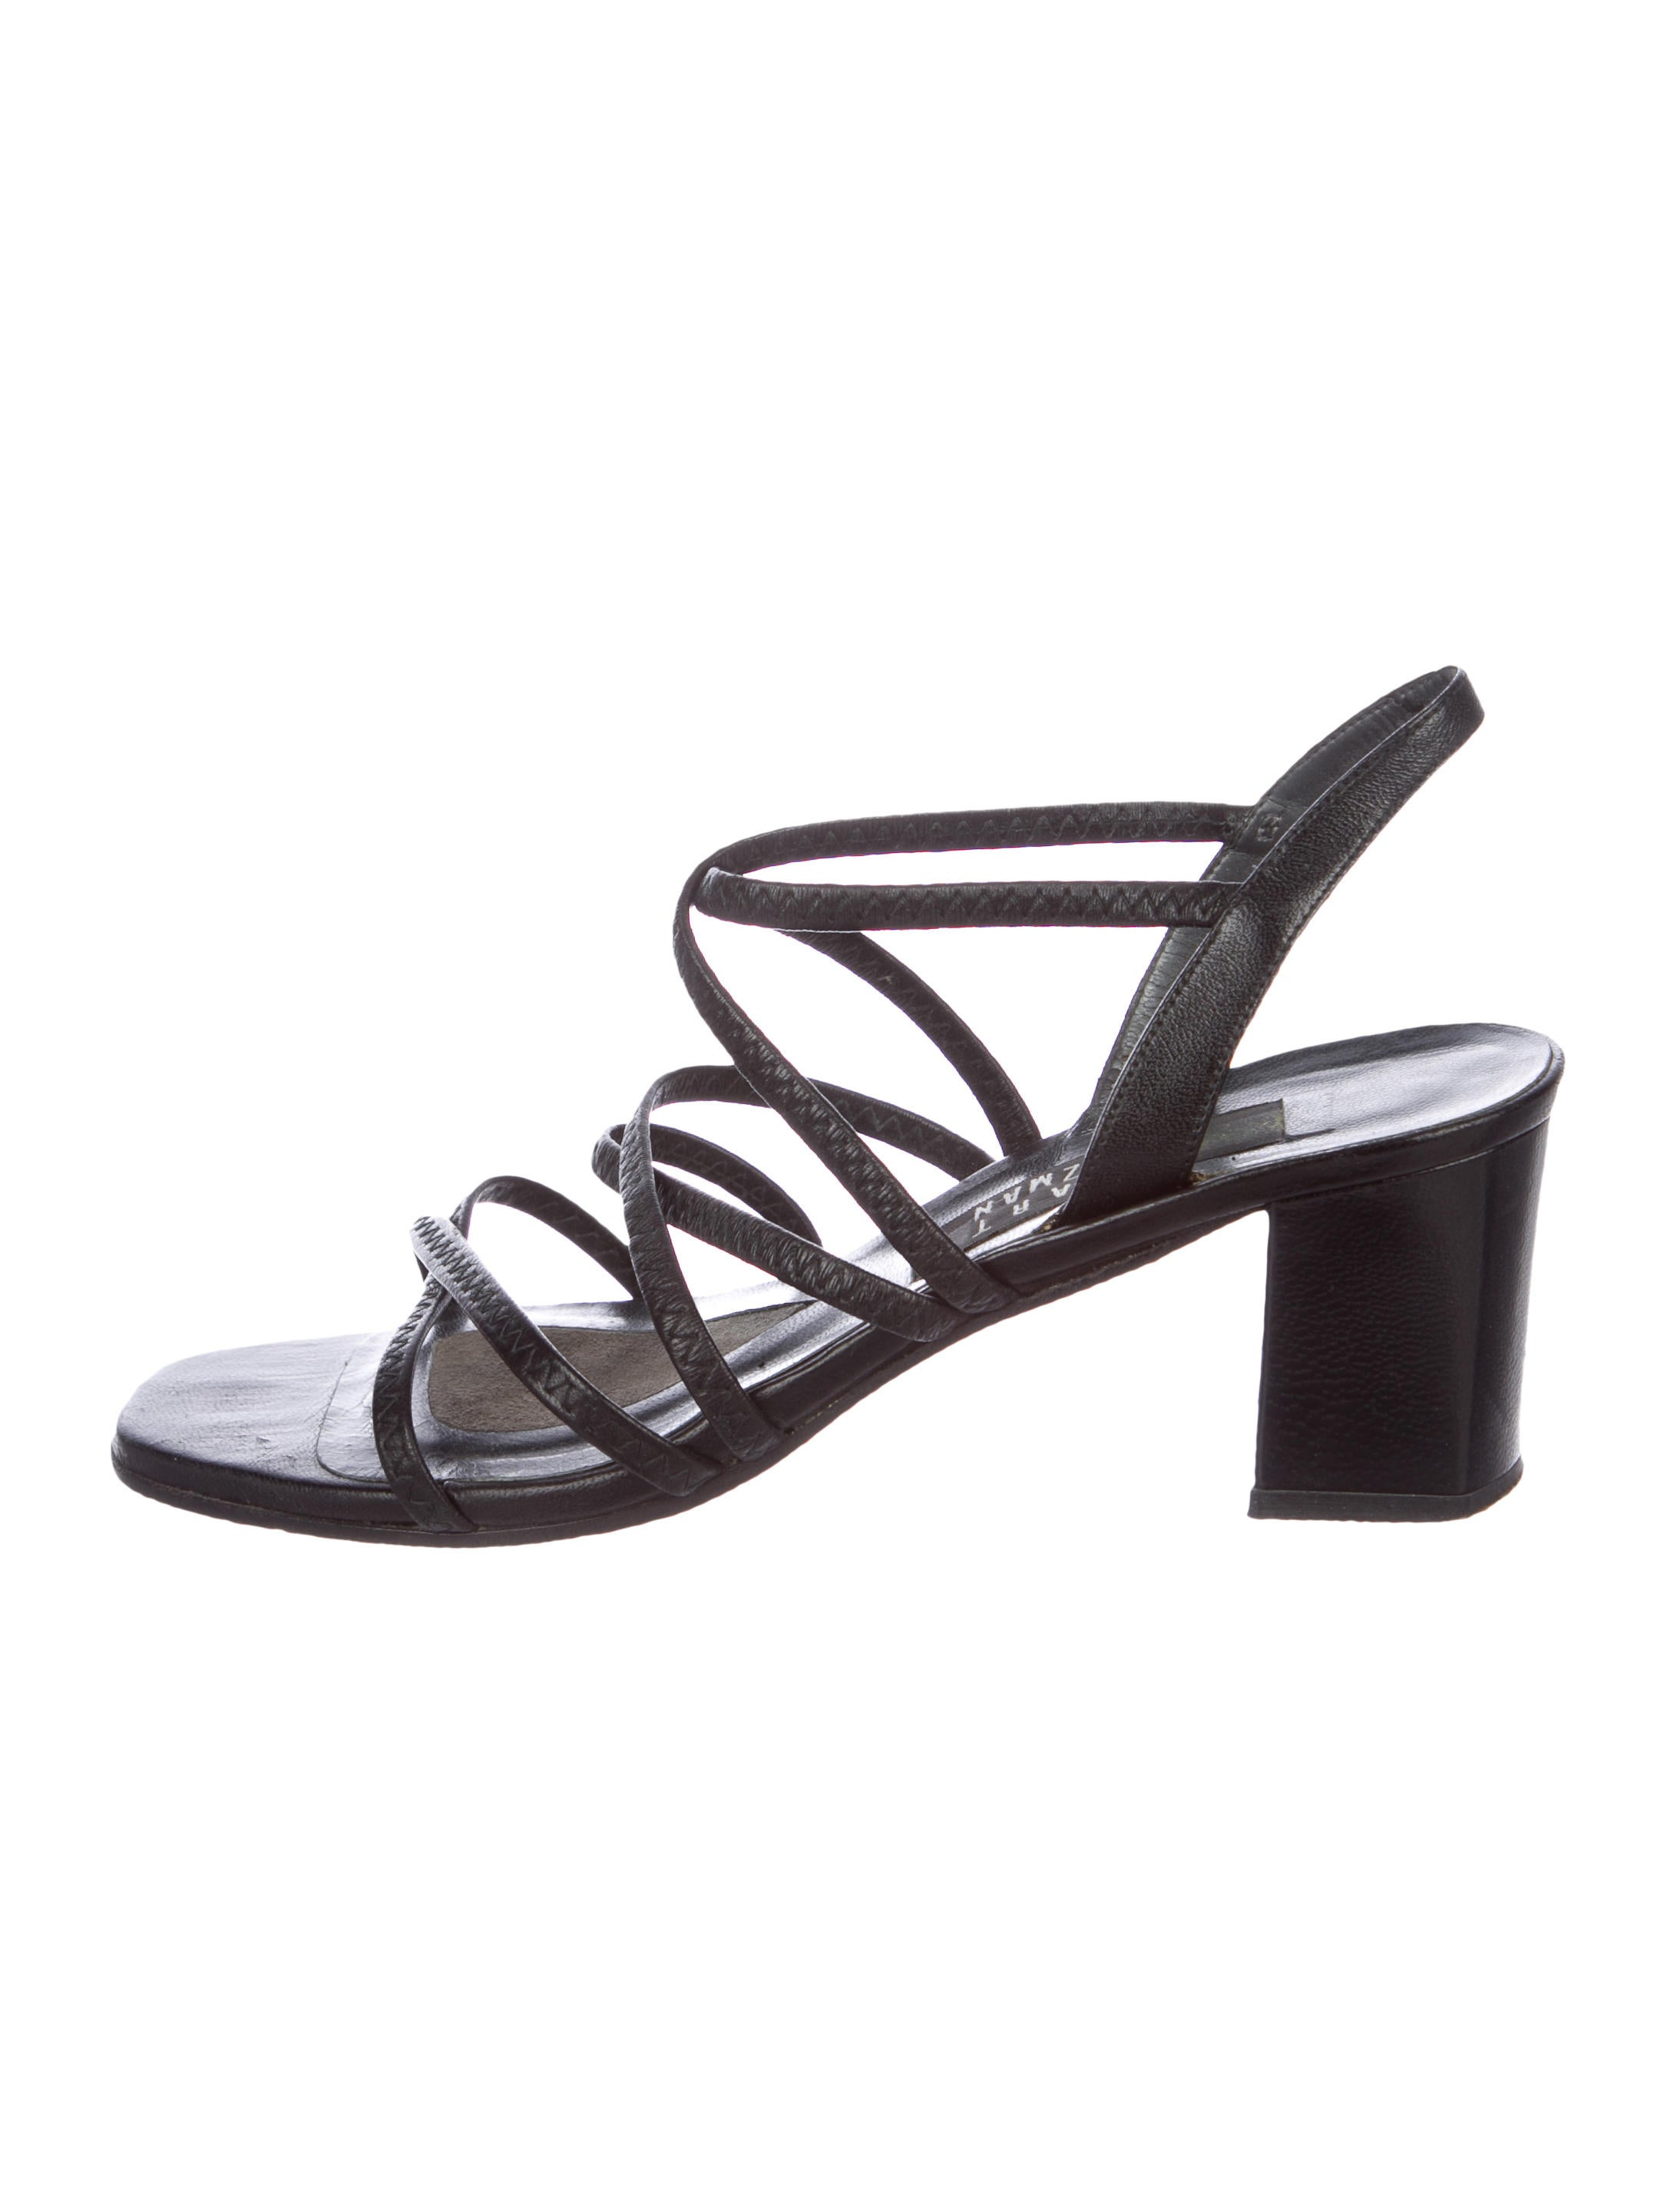 Stuart Weitzman Leather Multistrap Sandals genuine cheap price outlet store online for cheap for sale free shipping reliable outlet 100% authentic 9nf38fe